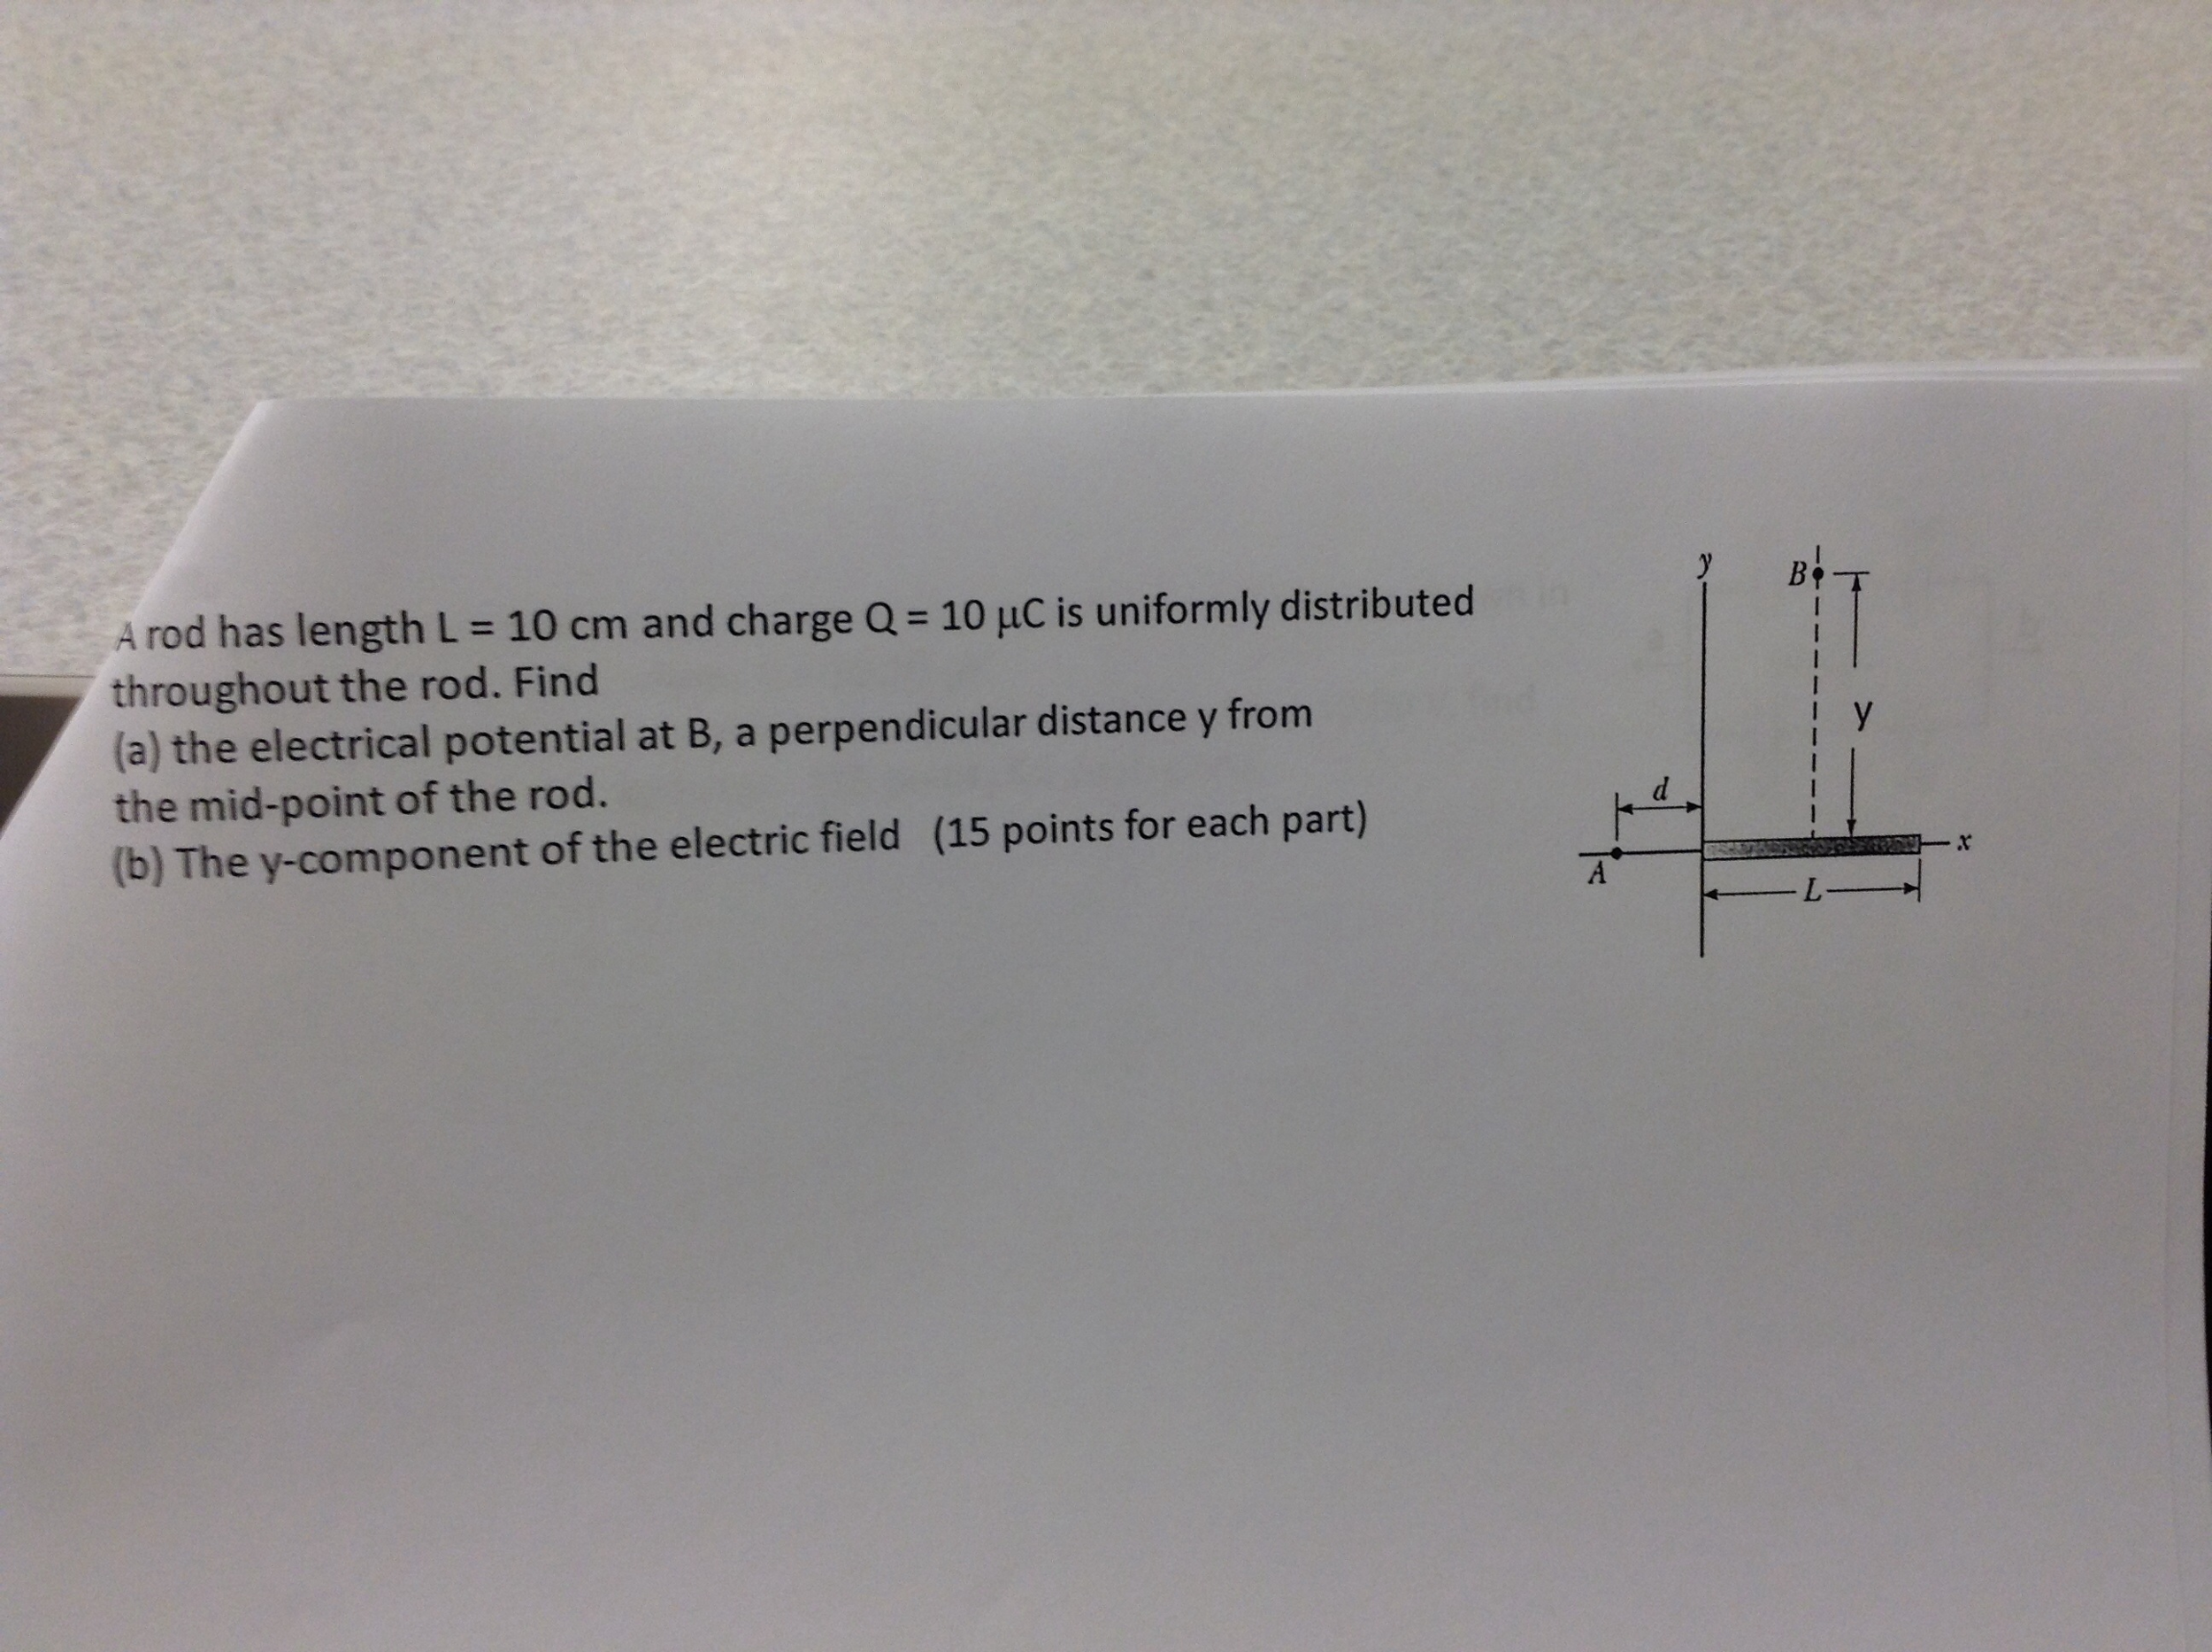 Physics archive july 15 2014 chegg a rod has length l 10 cm and charge q 10 muc is uniformly distributed throughout the rod find the electrical potential at b a perpendicular distance y pooptronica Images